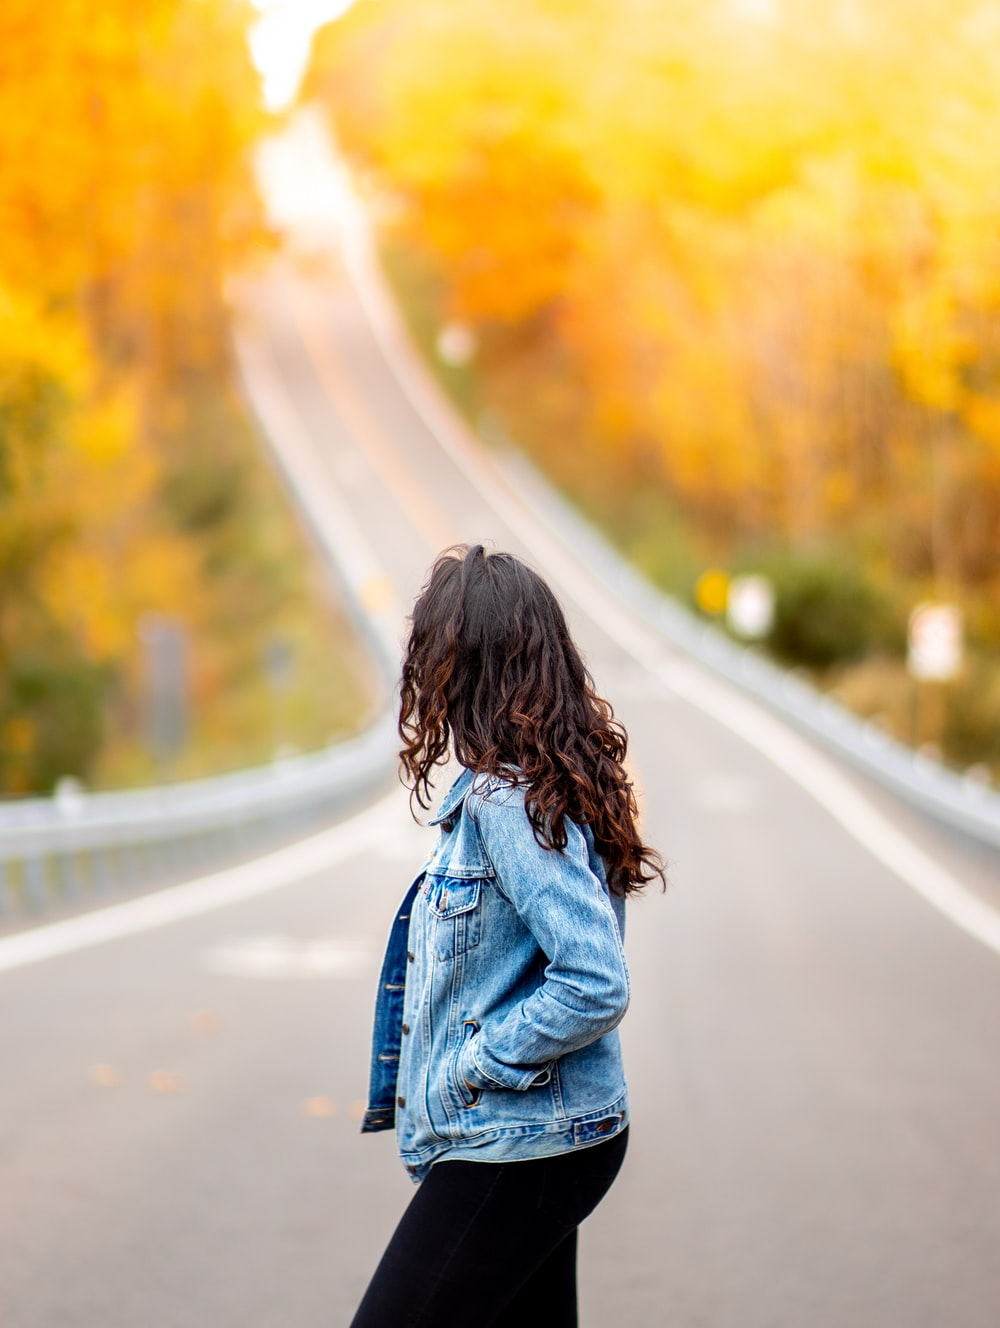 woman standing on road while hand in pocket during daytime